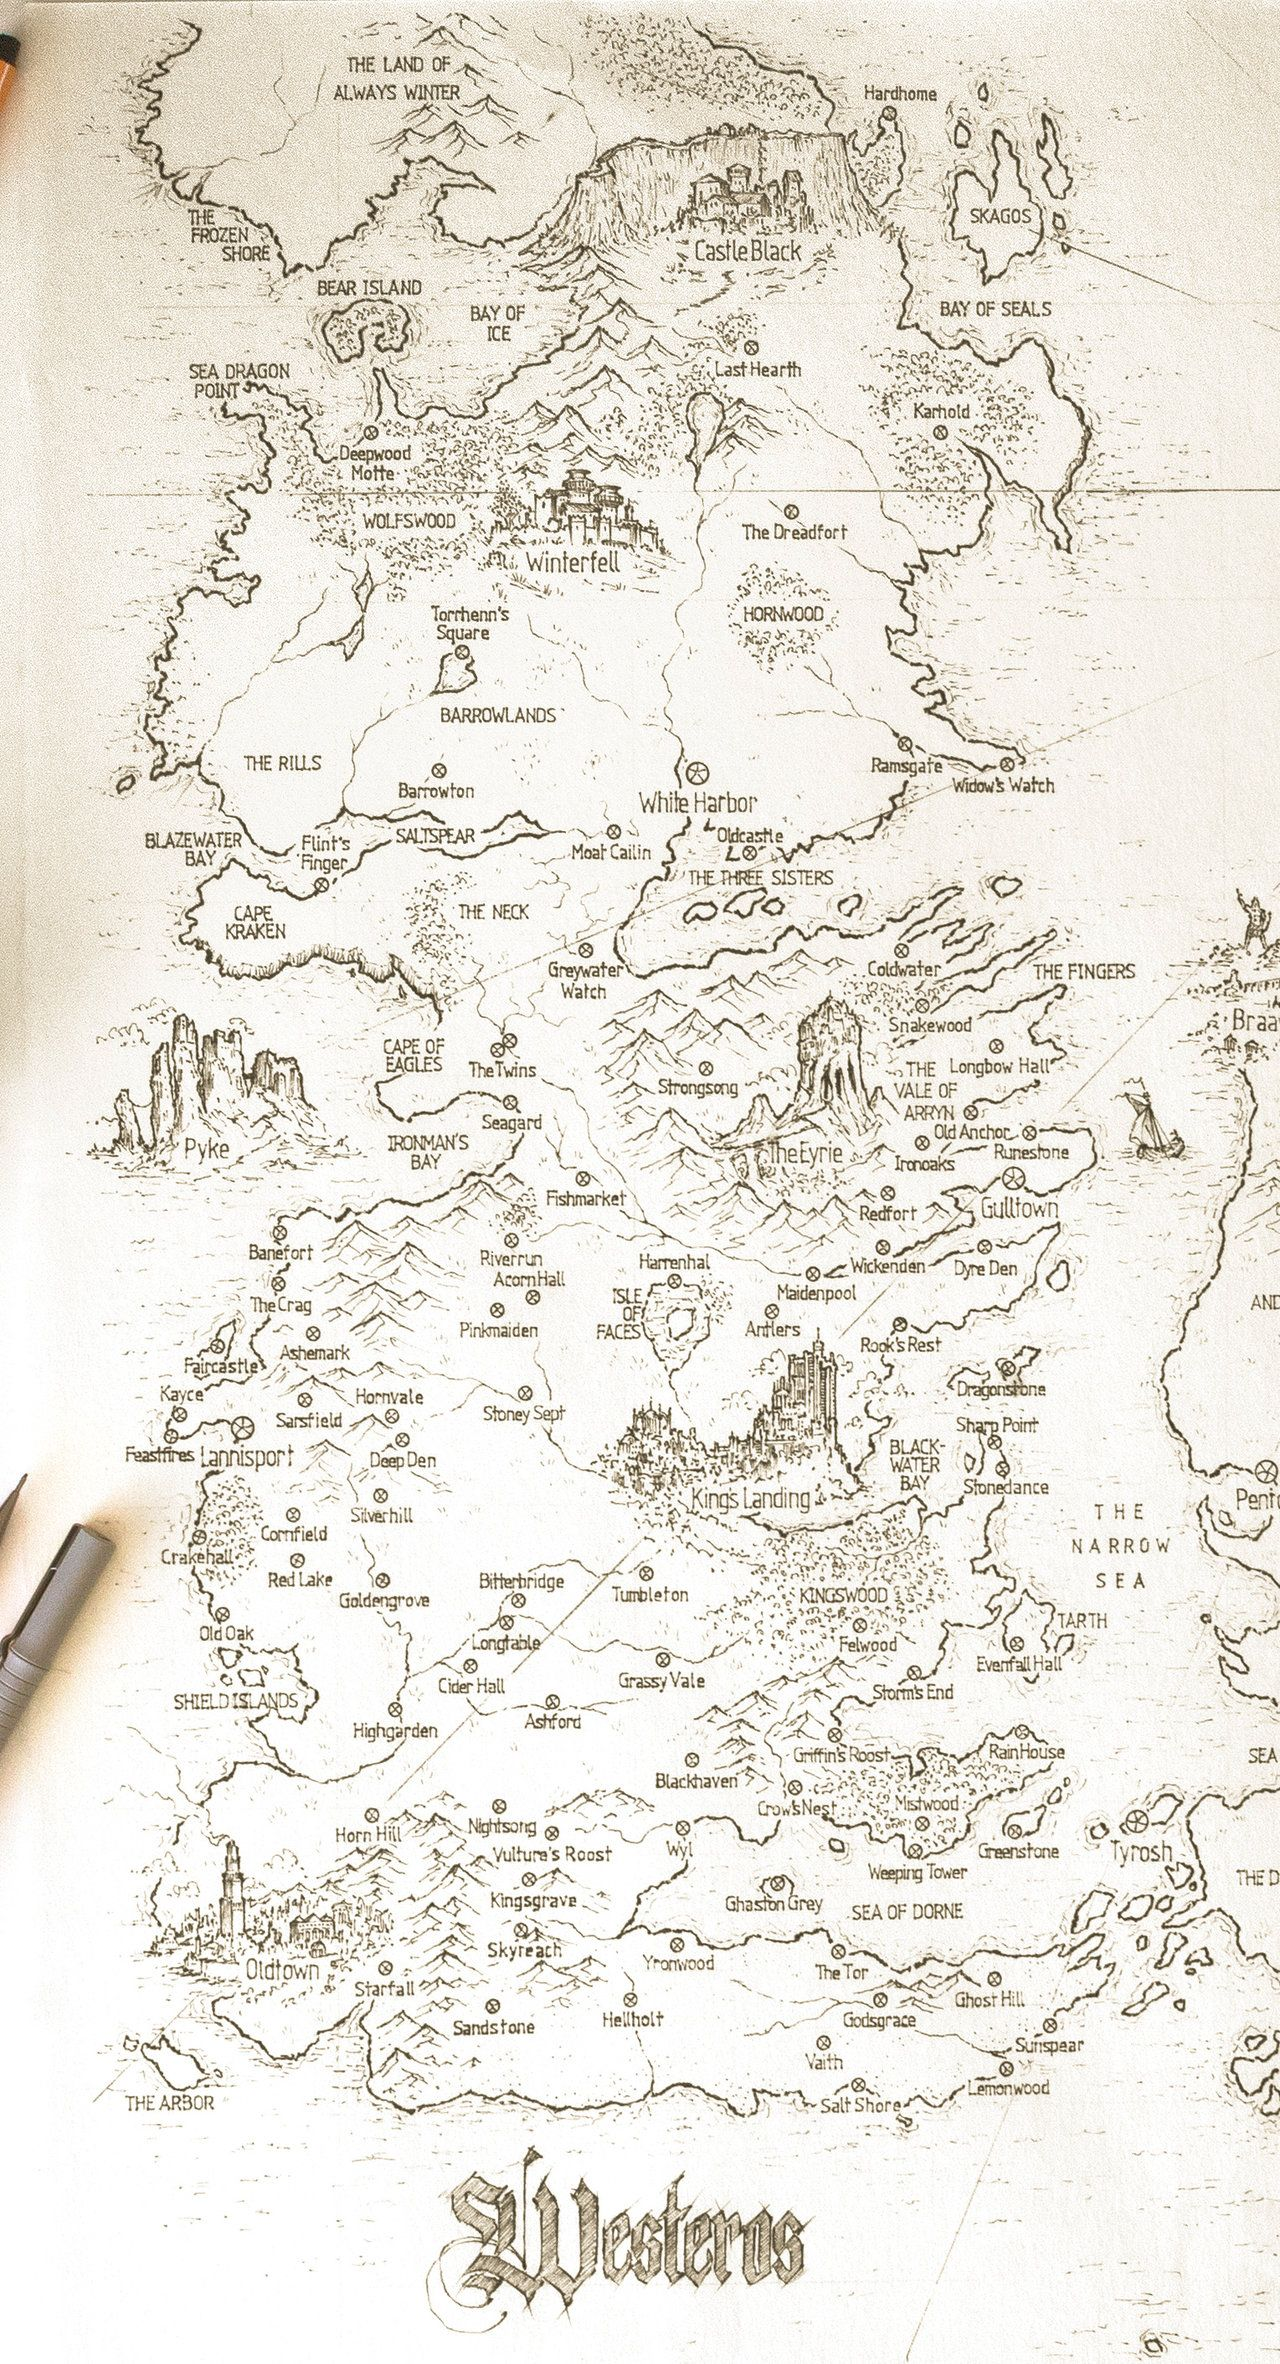 Asoiaf Speculative World Map Westeros Full By Lucas Reiner With